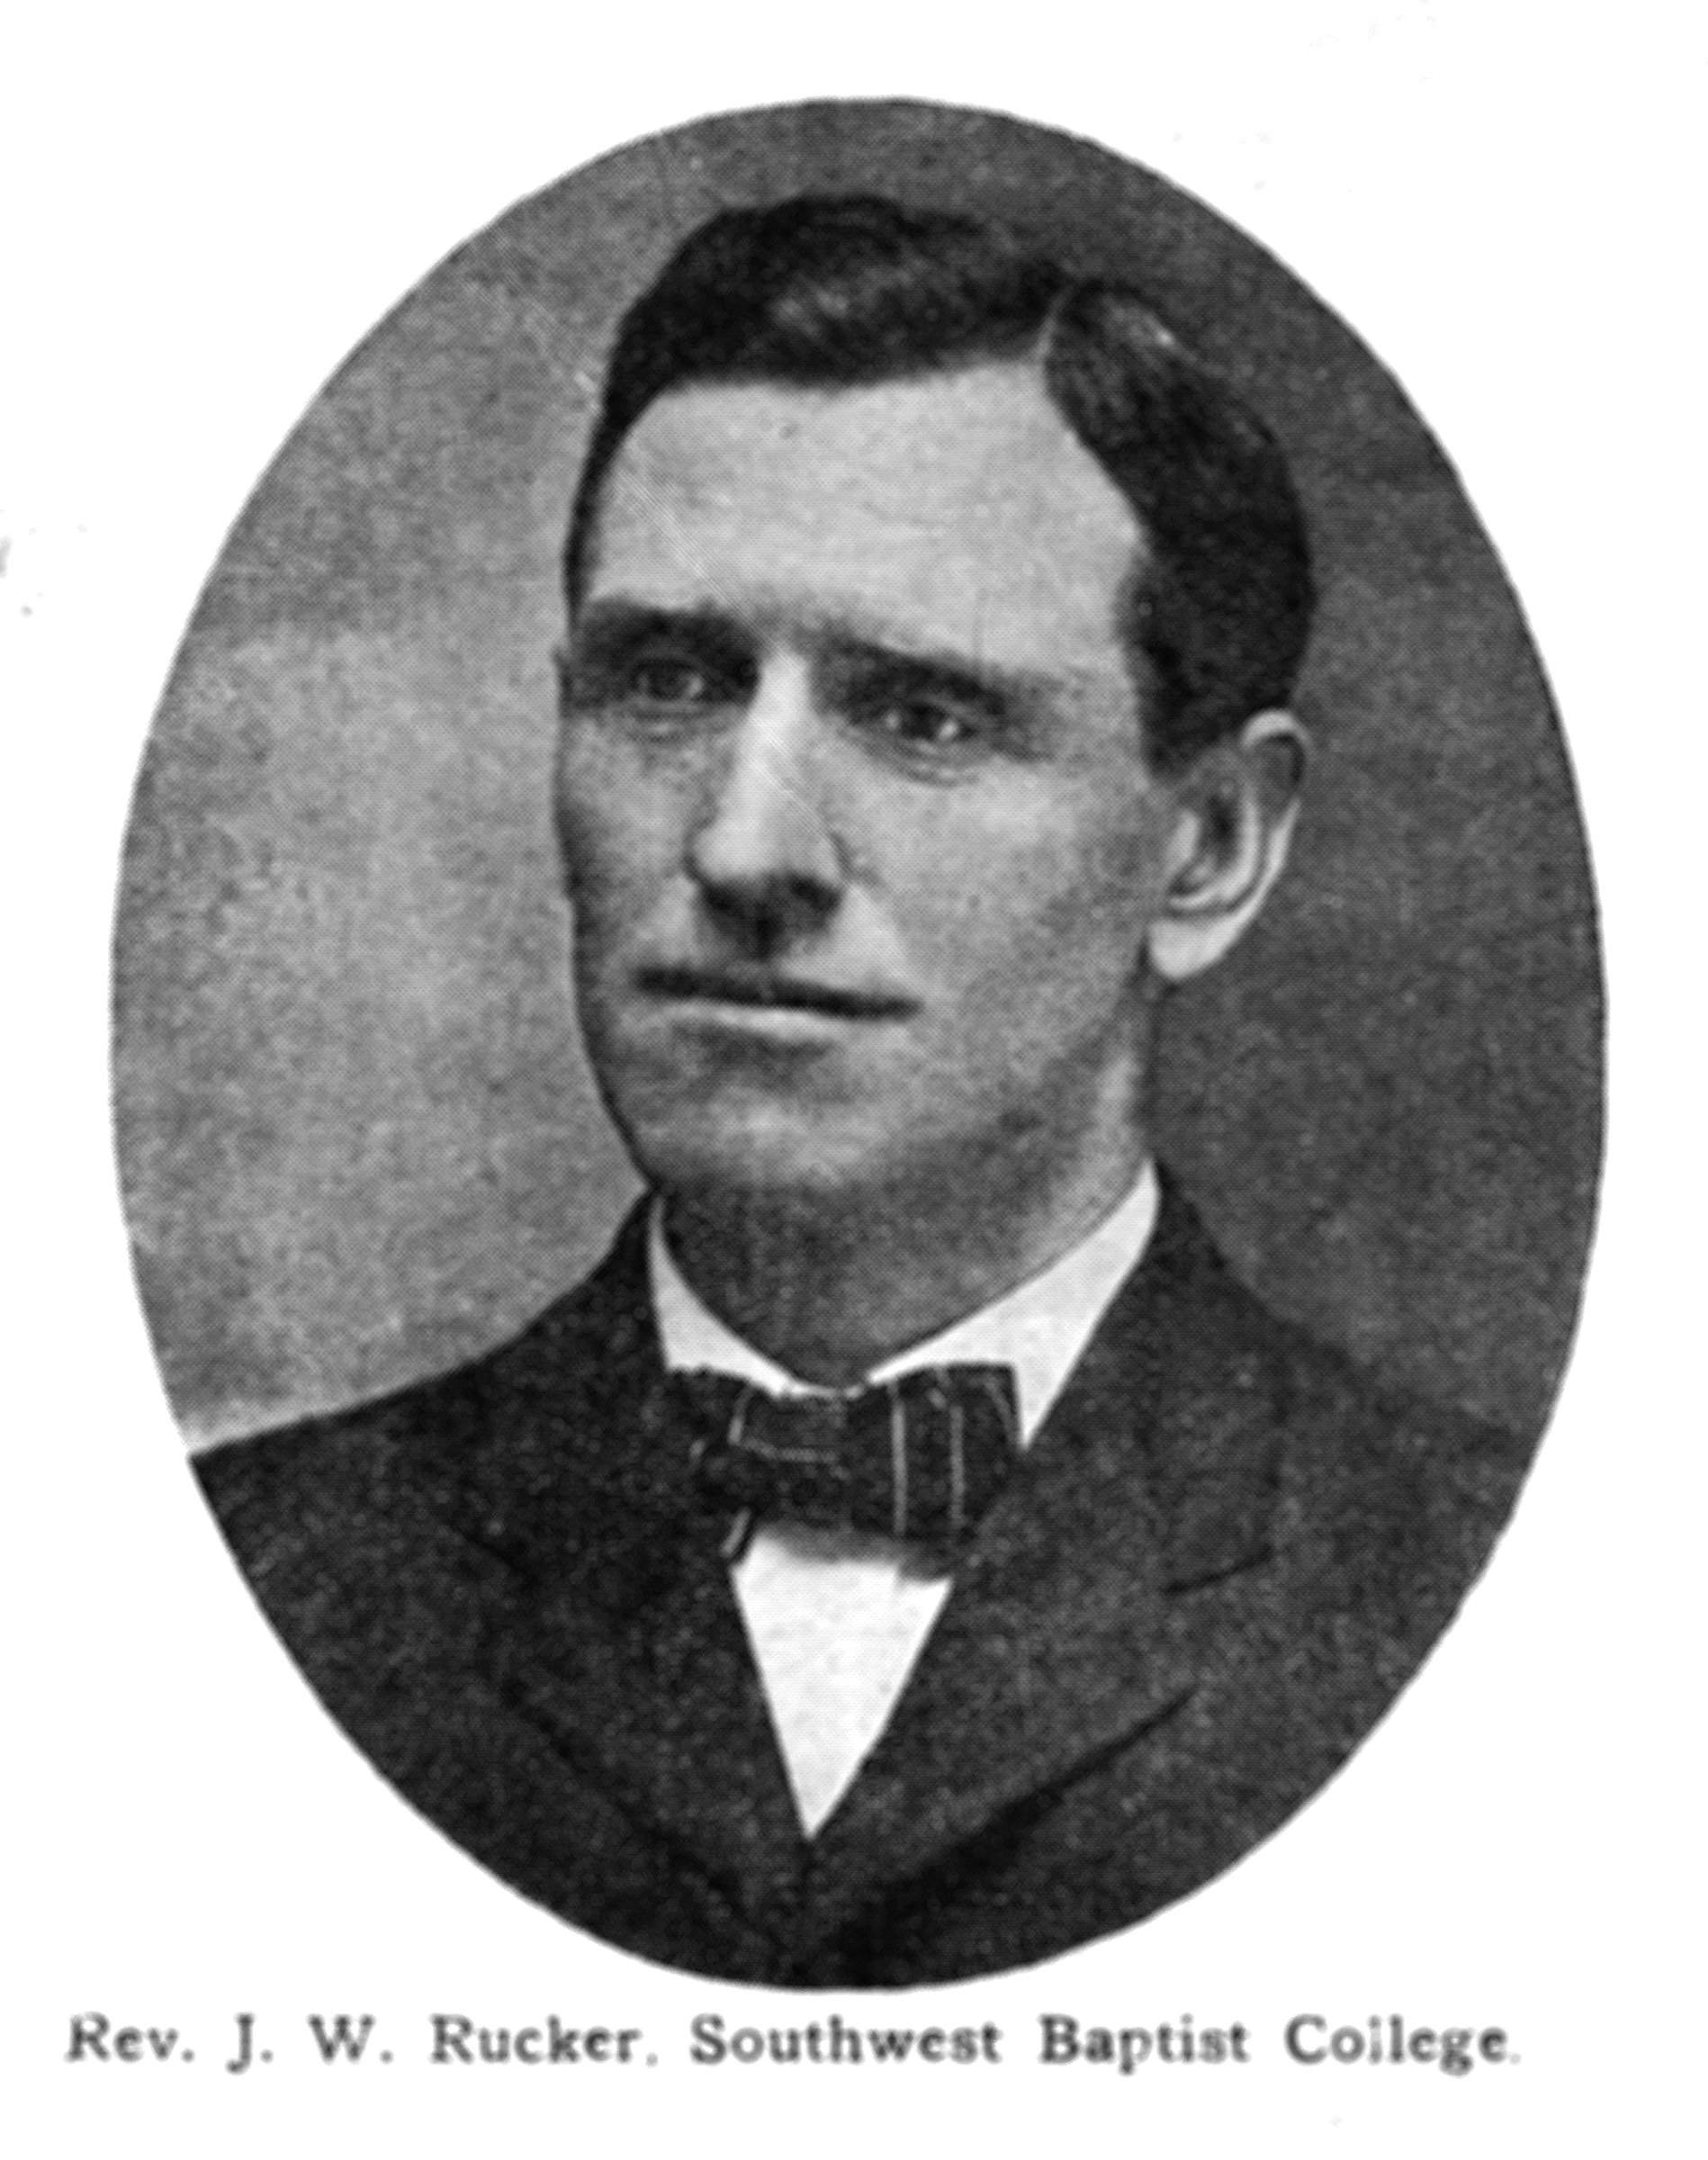 Image of J. W. Rucker.